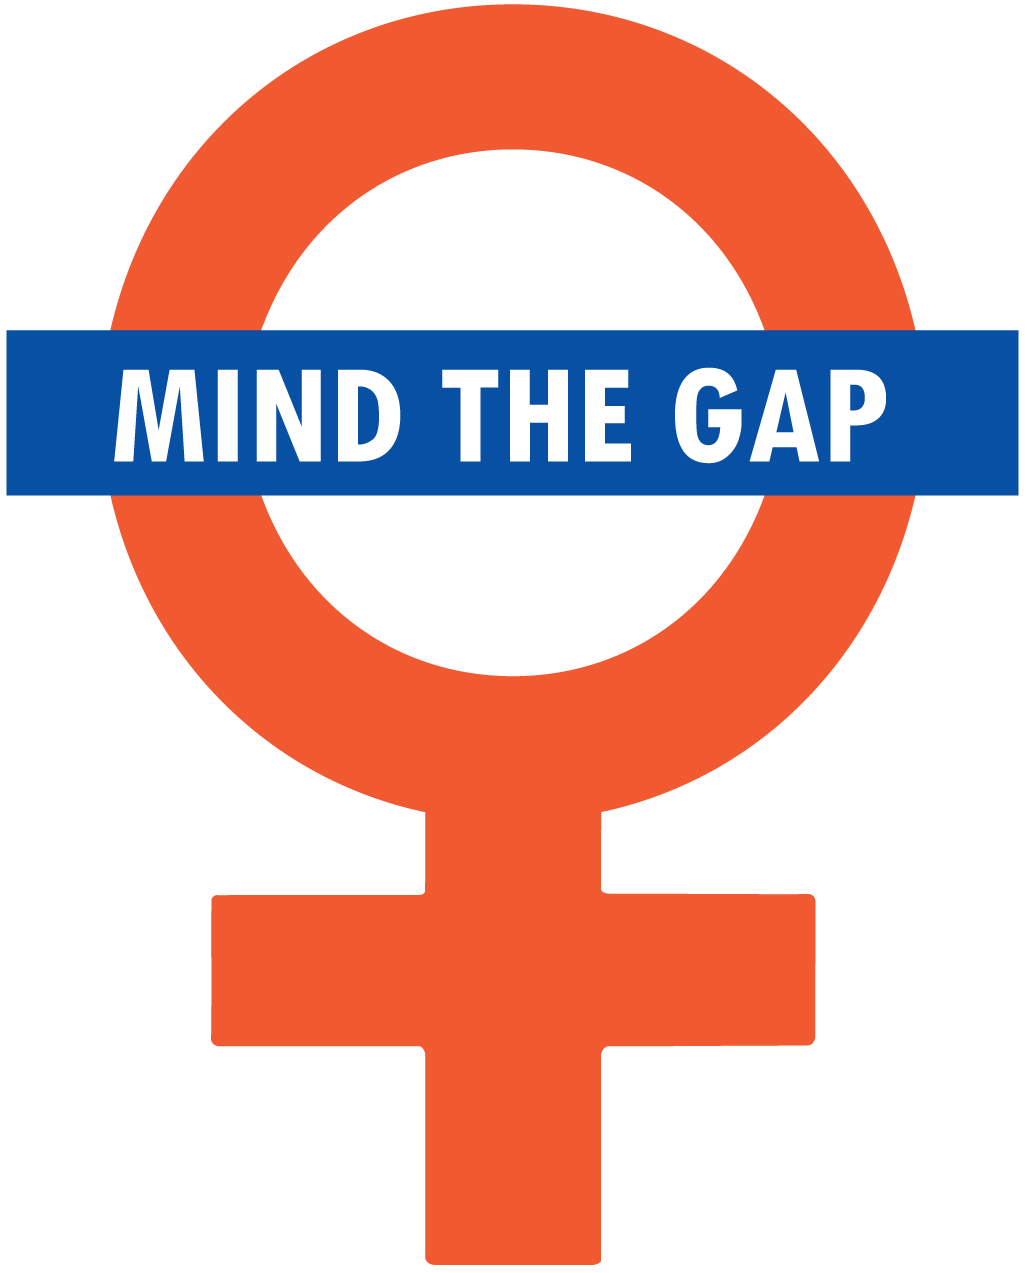 By London Student Feminists [CC BY-SA 3.0 (https://creativecommons.org/licenses/by-sa/3.0)], via Wikimedia Commons